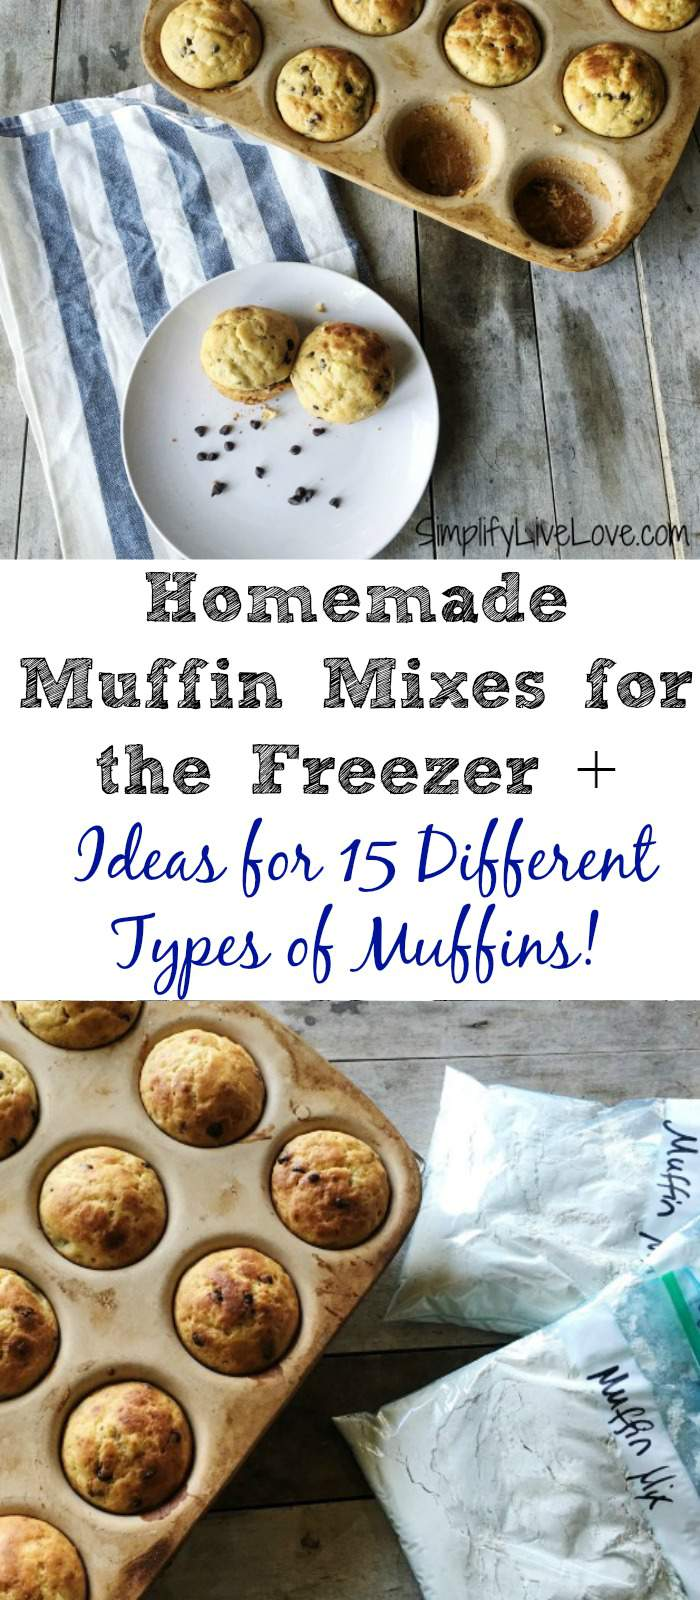 These easy muffin mixes for the freezer mean quick homemade baked goods on busy mornings. Make extra mixes the same day you serve this to fill your freezer! Plus, get 15 ideas for different types of muffins you can make using this mix.